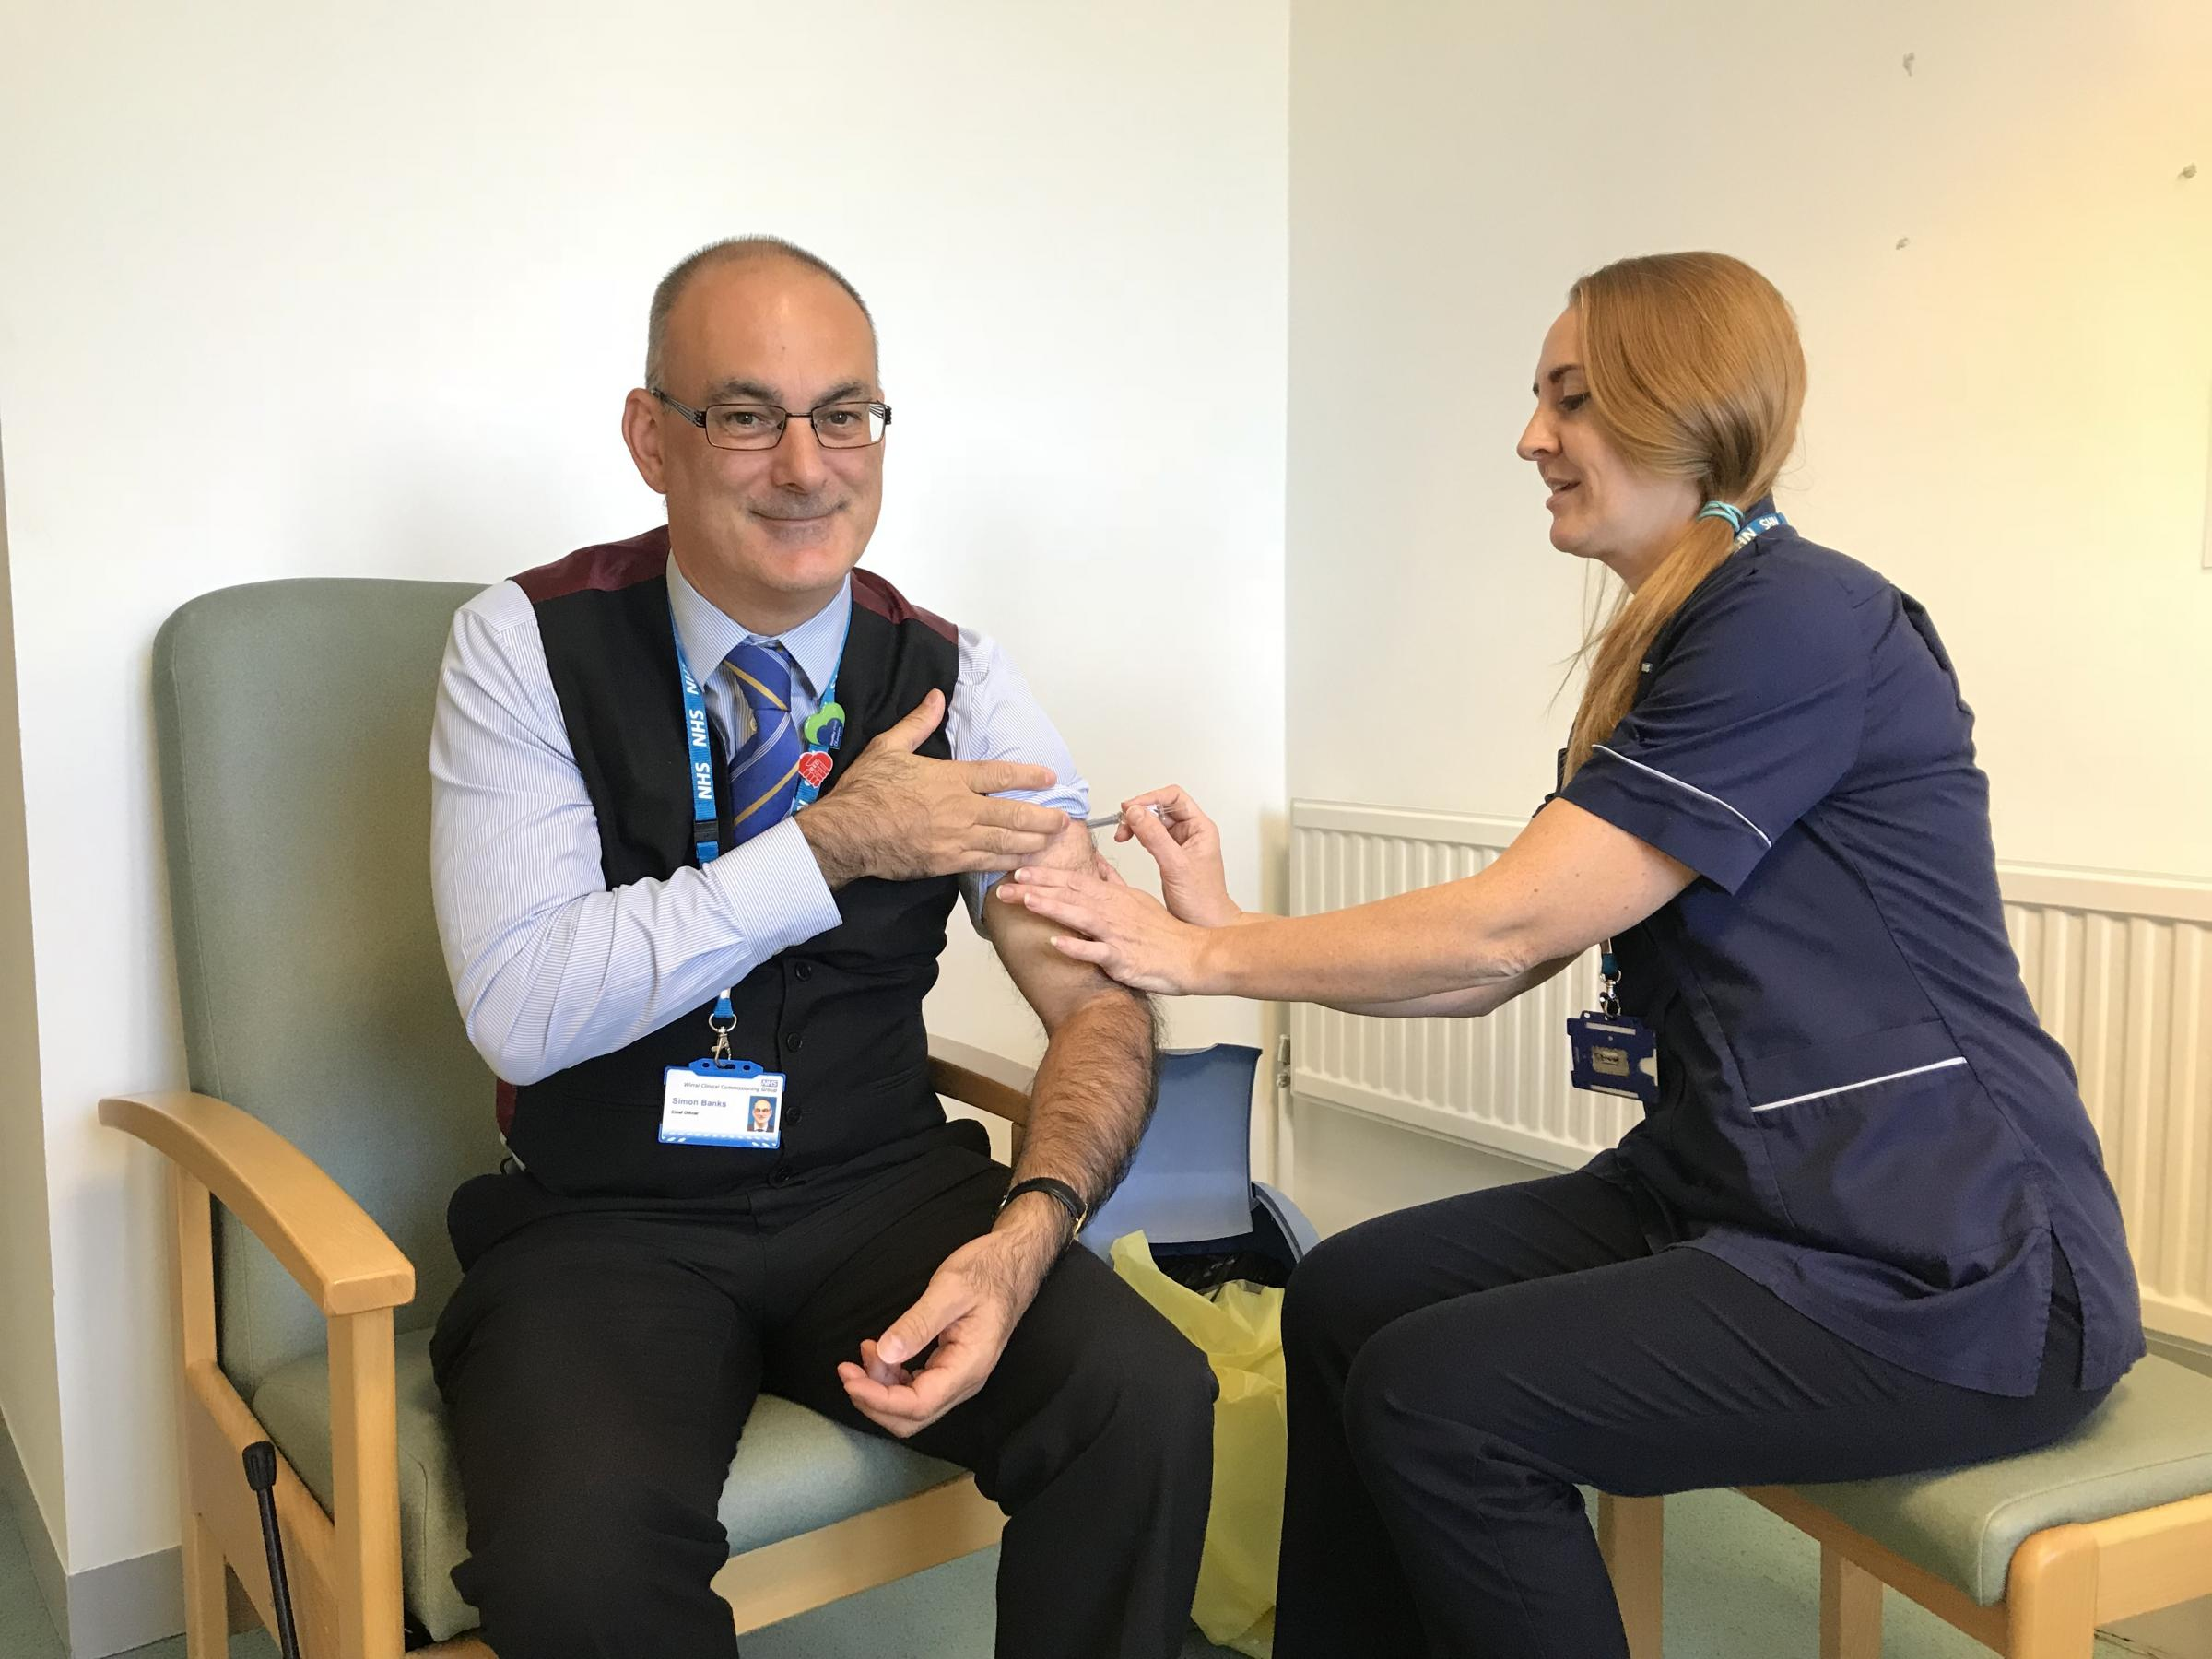 Simon Banks, Chief Officer of NHS Wirral CCG and Wirral Health and Care Commissioning gets his flu jab